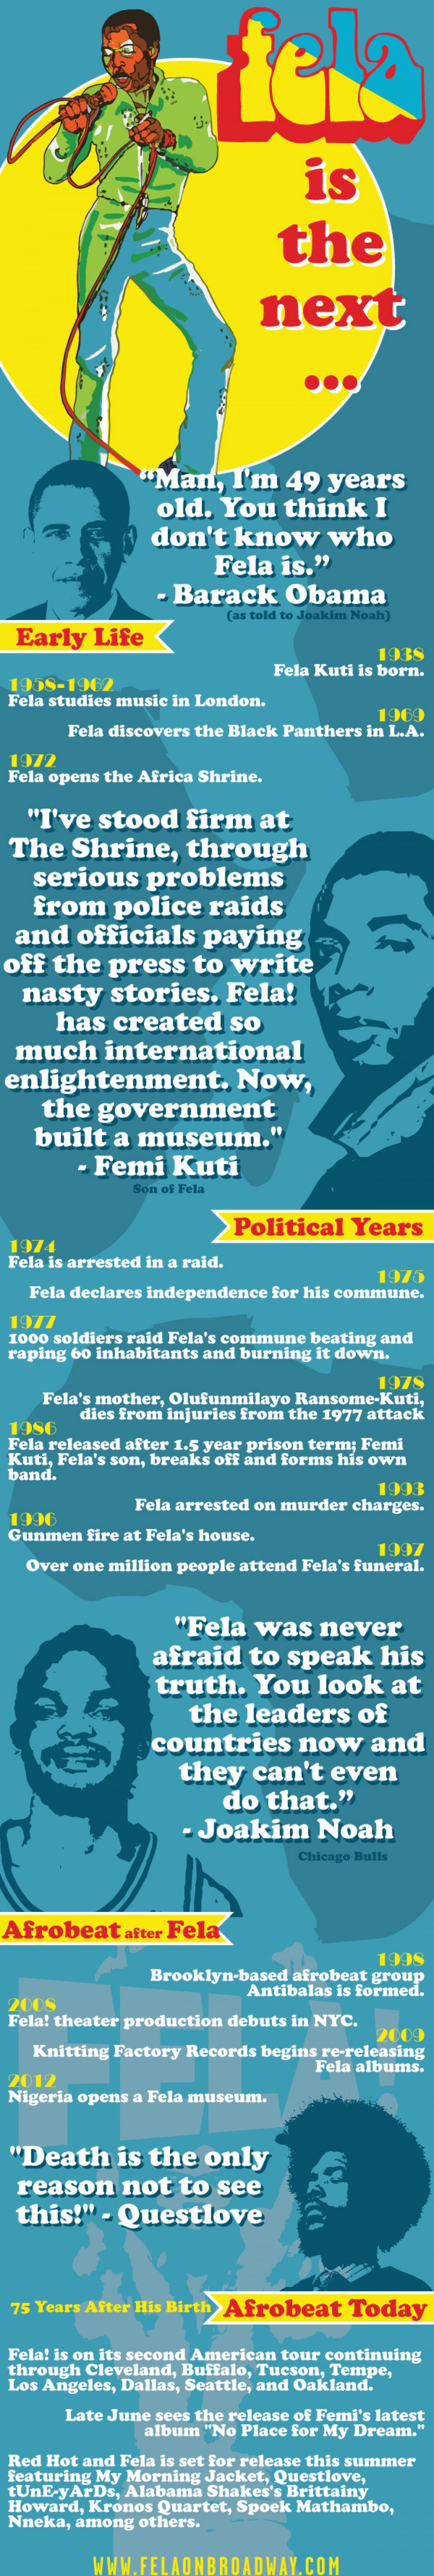 Fela's life - from enemy to hero Infographic